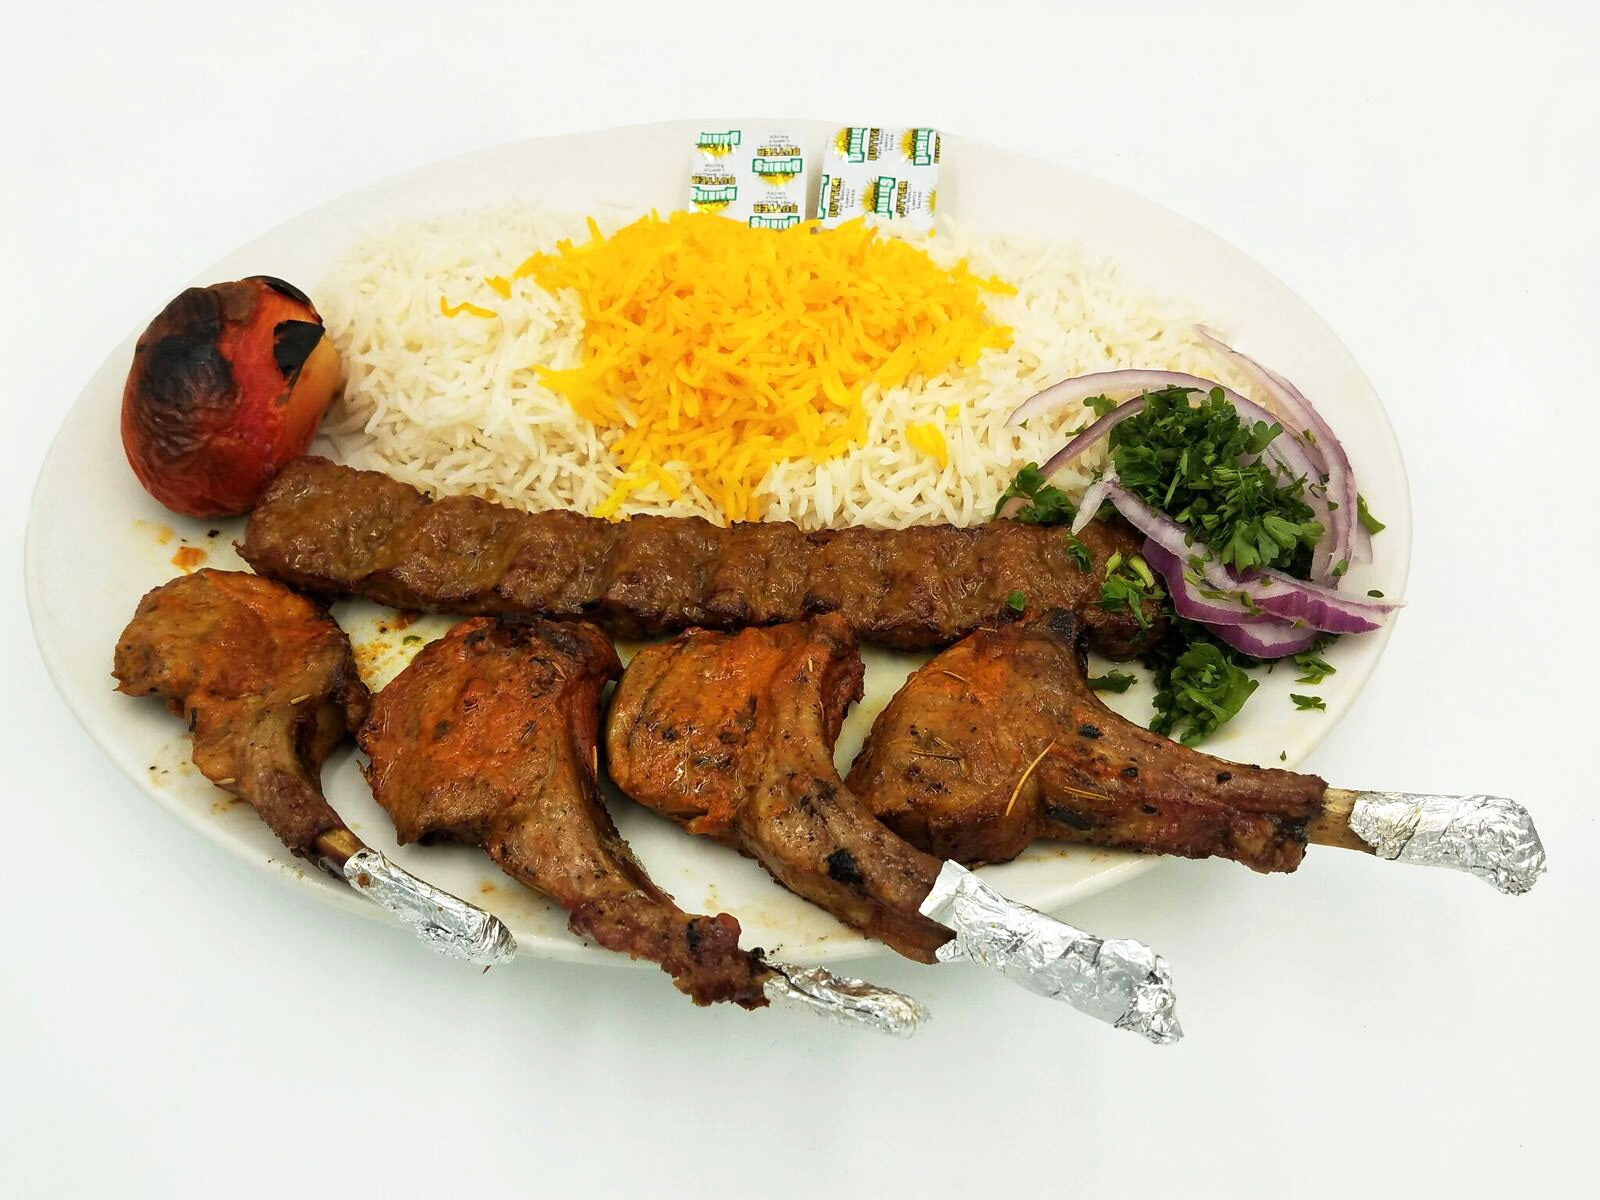 Shish Leek / Rack of Lamb $24.00